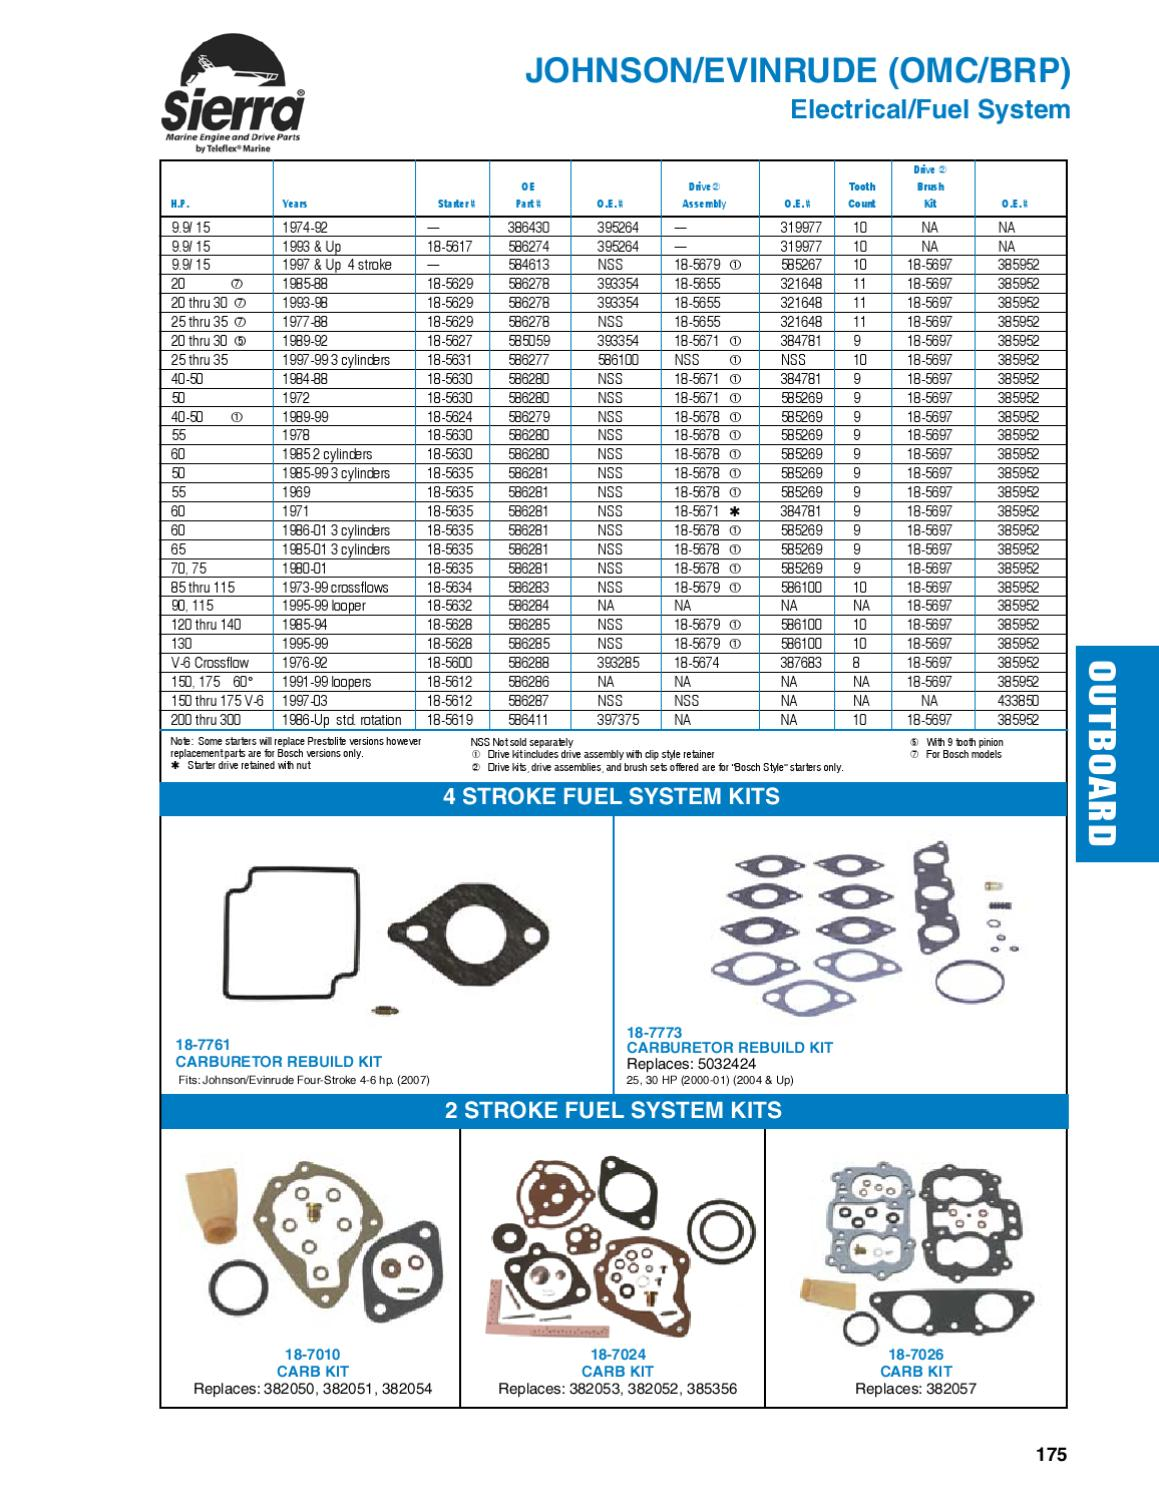 Sierra Marine Engine and Drive Parts for Johnson Evinrude Outboard